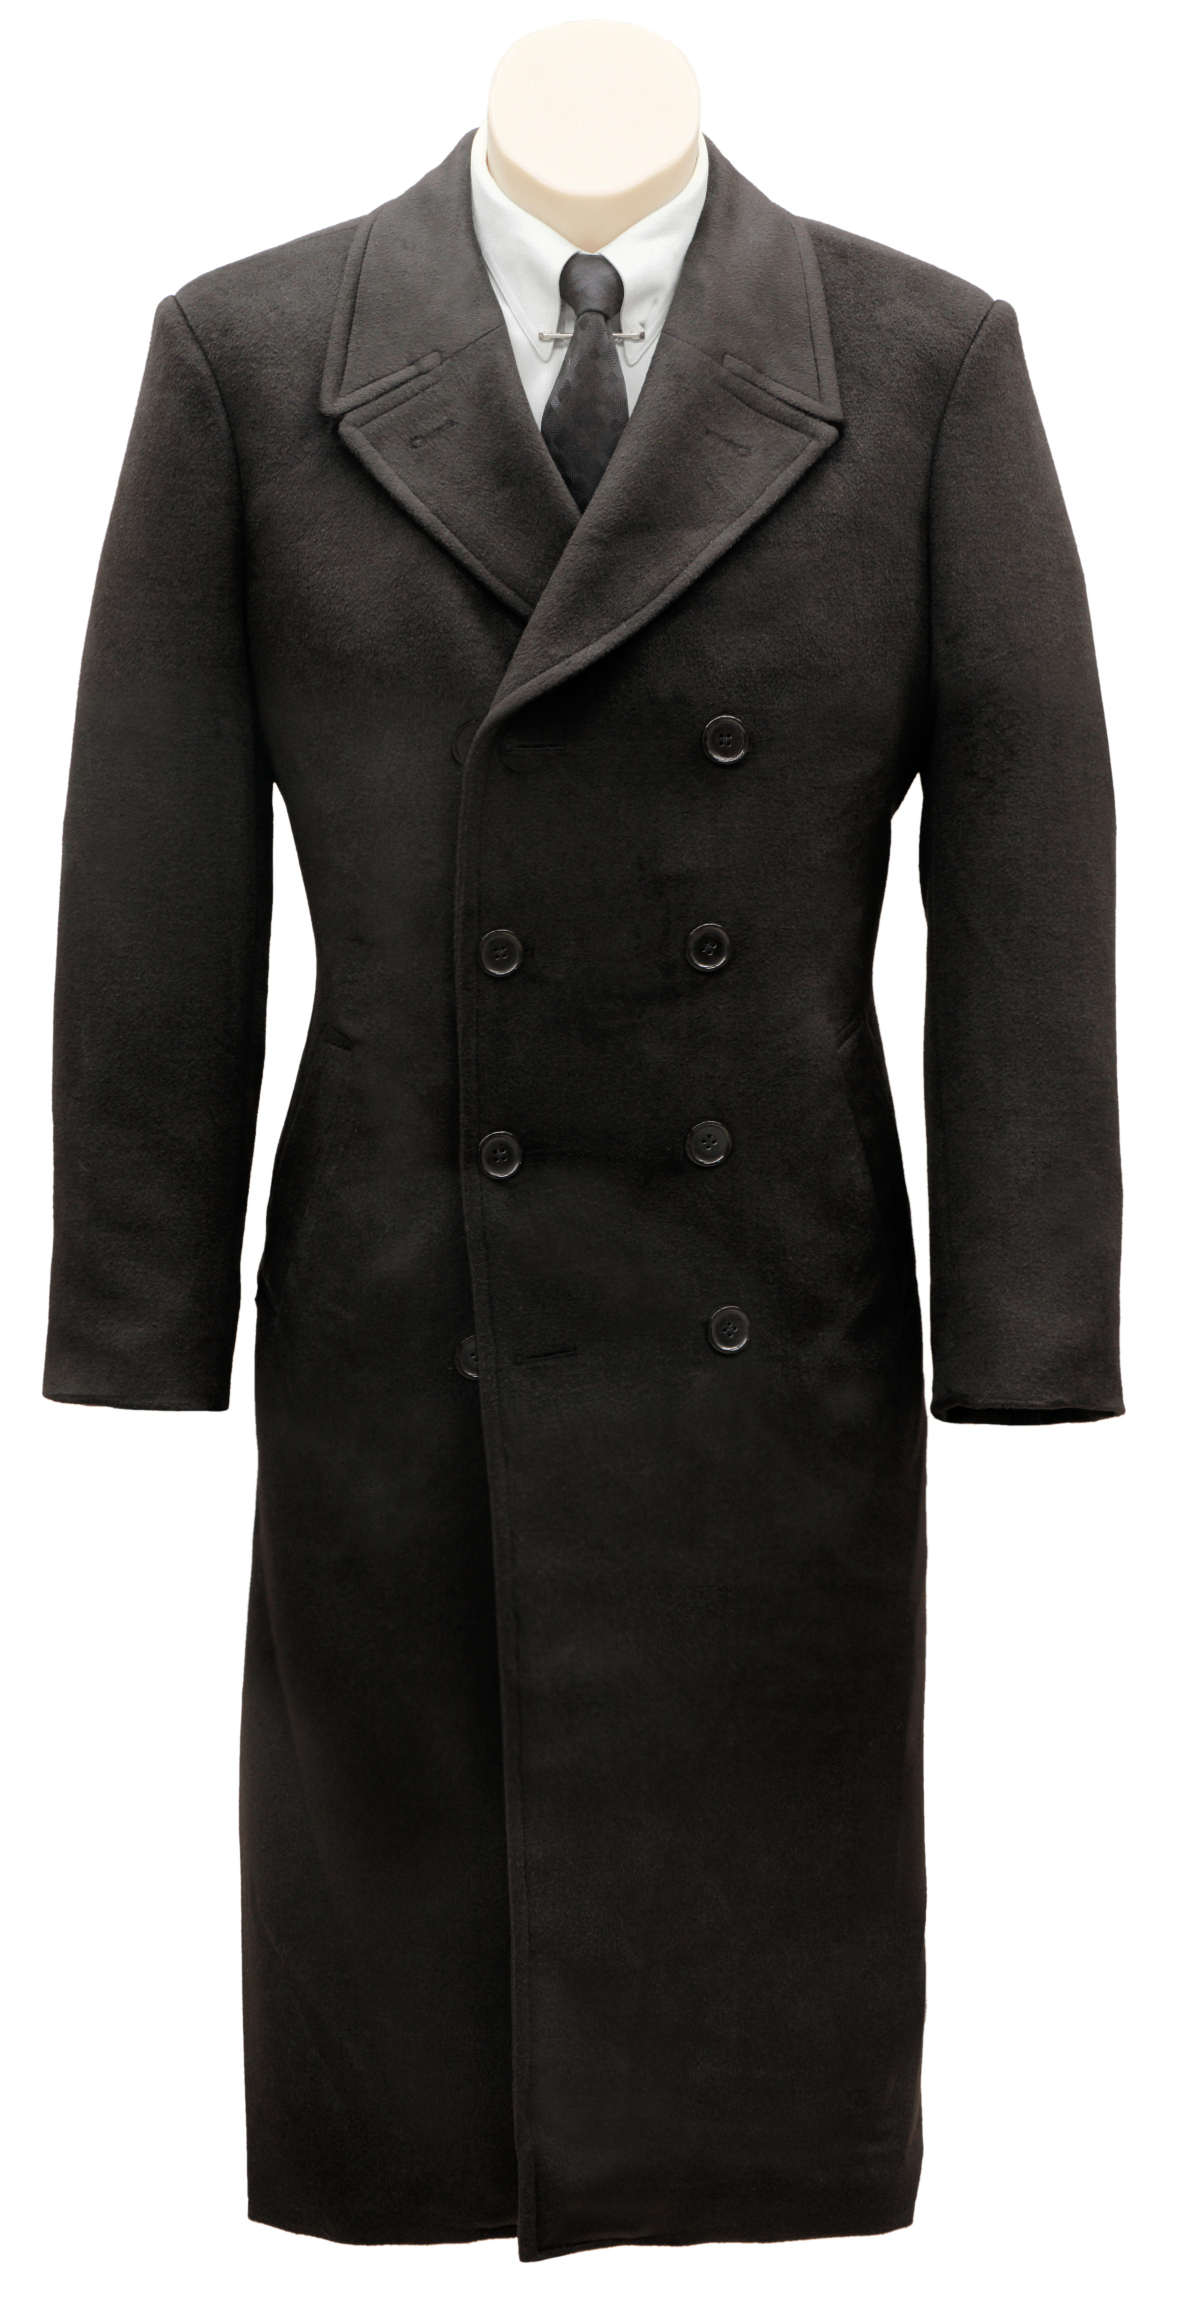 Spectre Bridge Coat